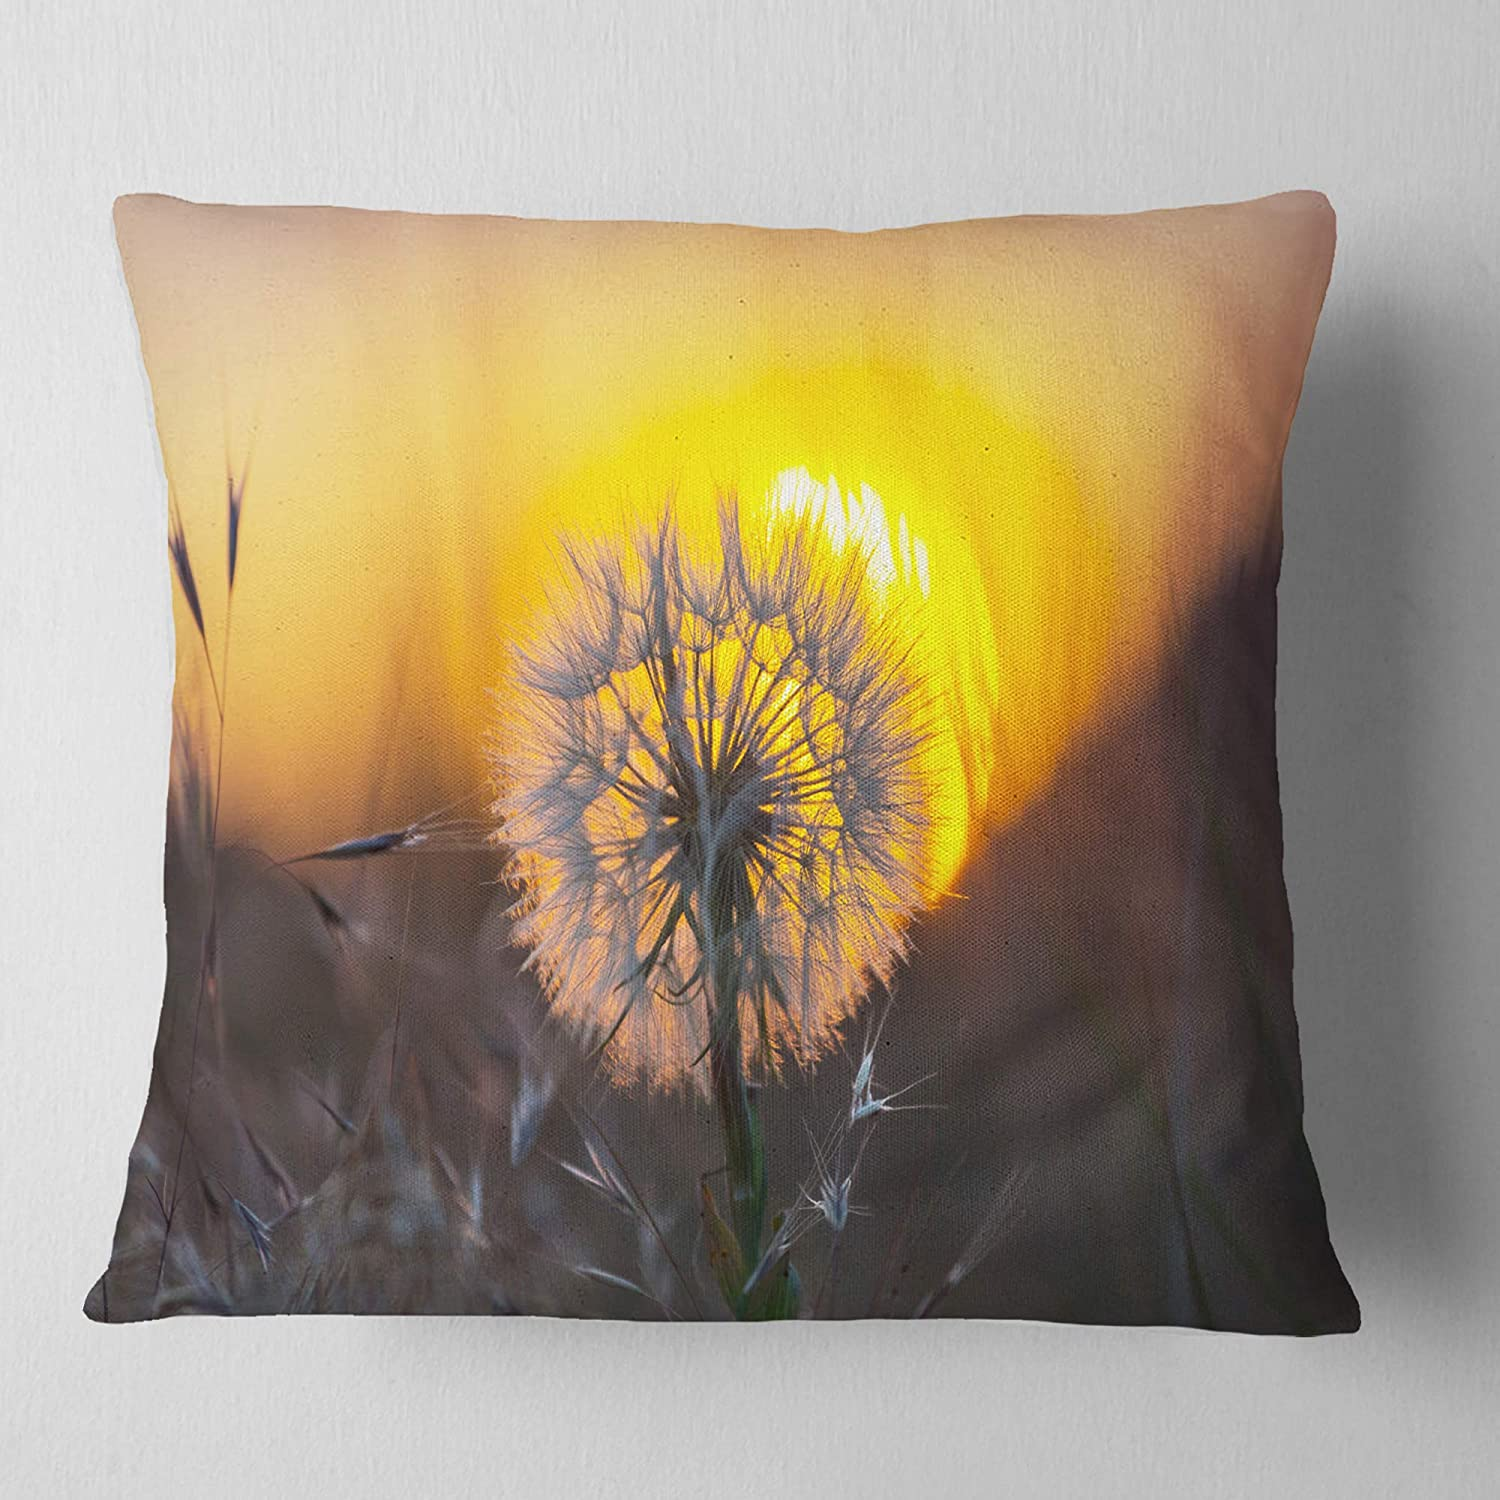 Designart CU12797-26-26 Stunning Dandelion View at Sunset' Floral Cushion Cover for Living Room, Sofa Throw Pillow 26 in. x 26 in. in